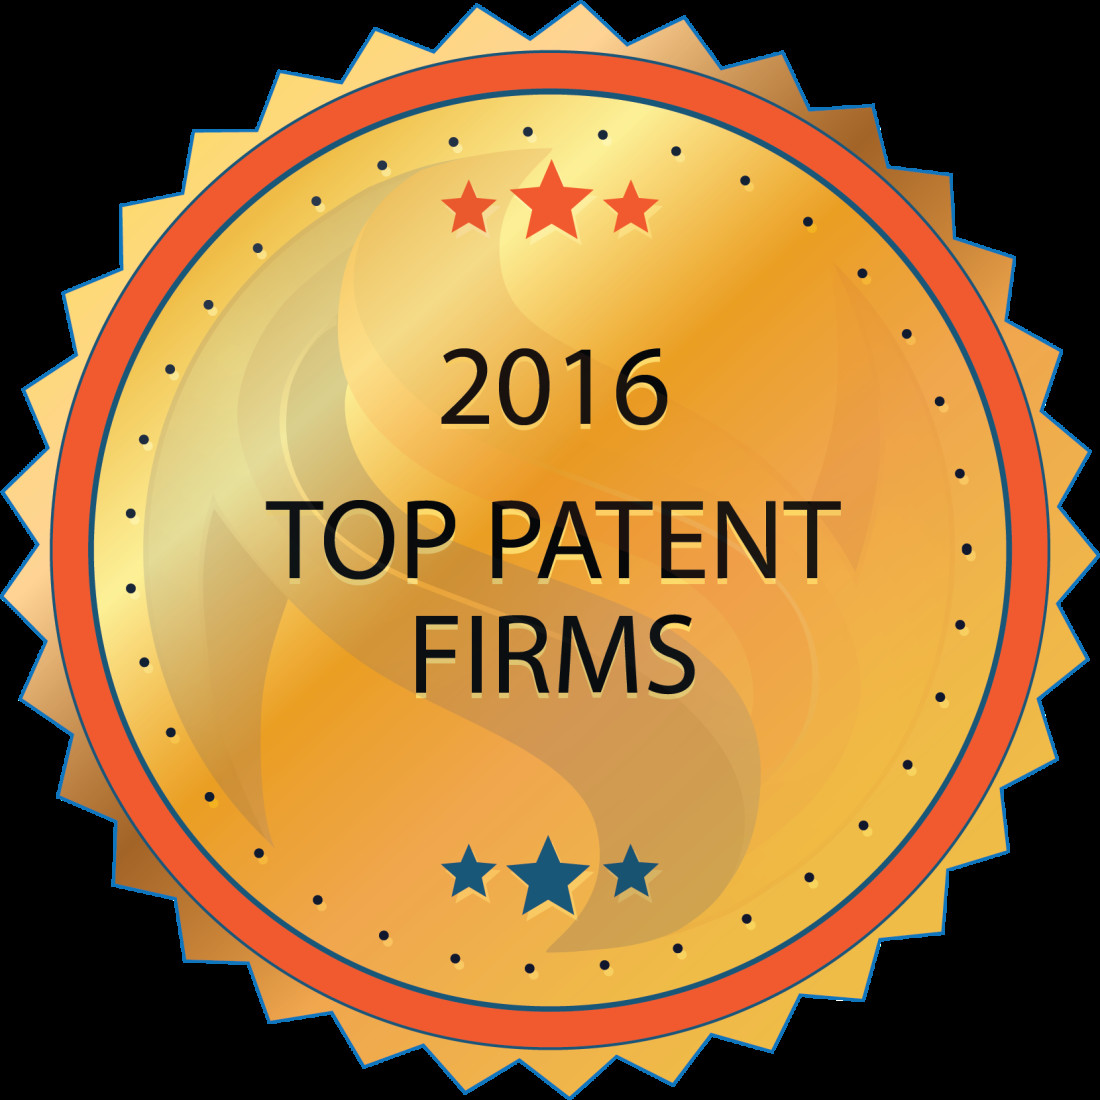 Top Patent Firms 2016 badge